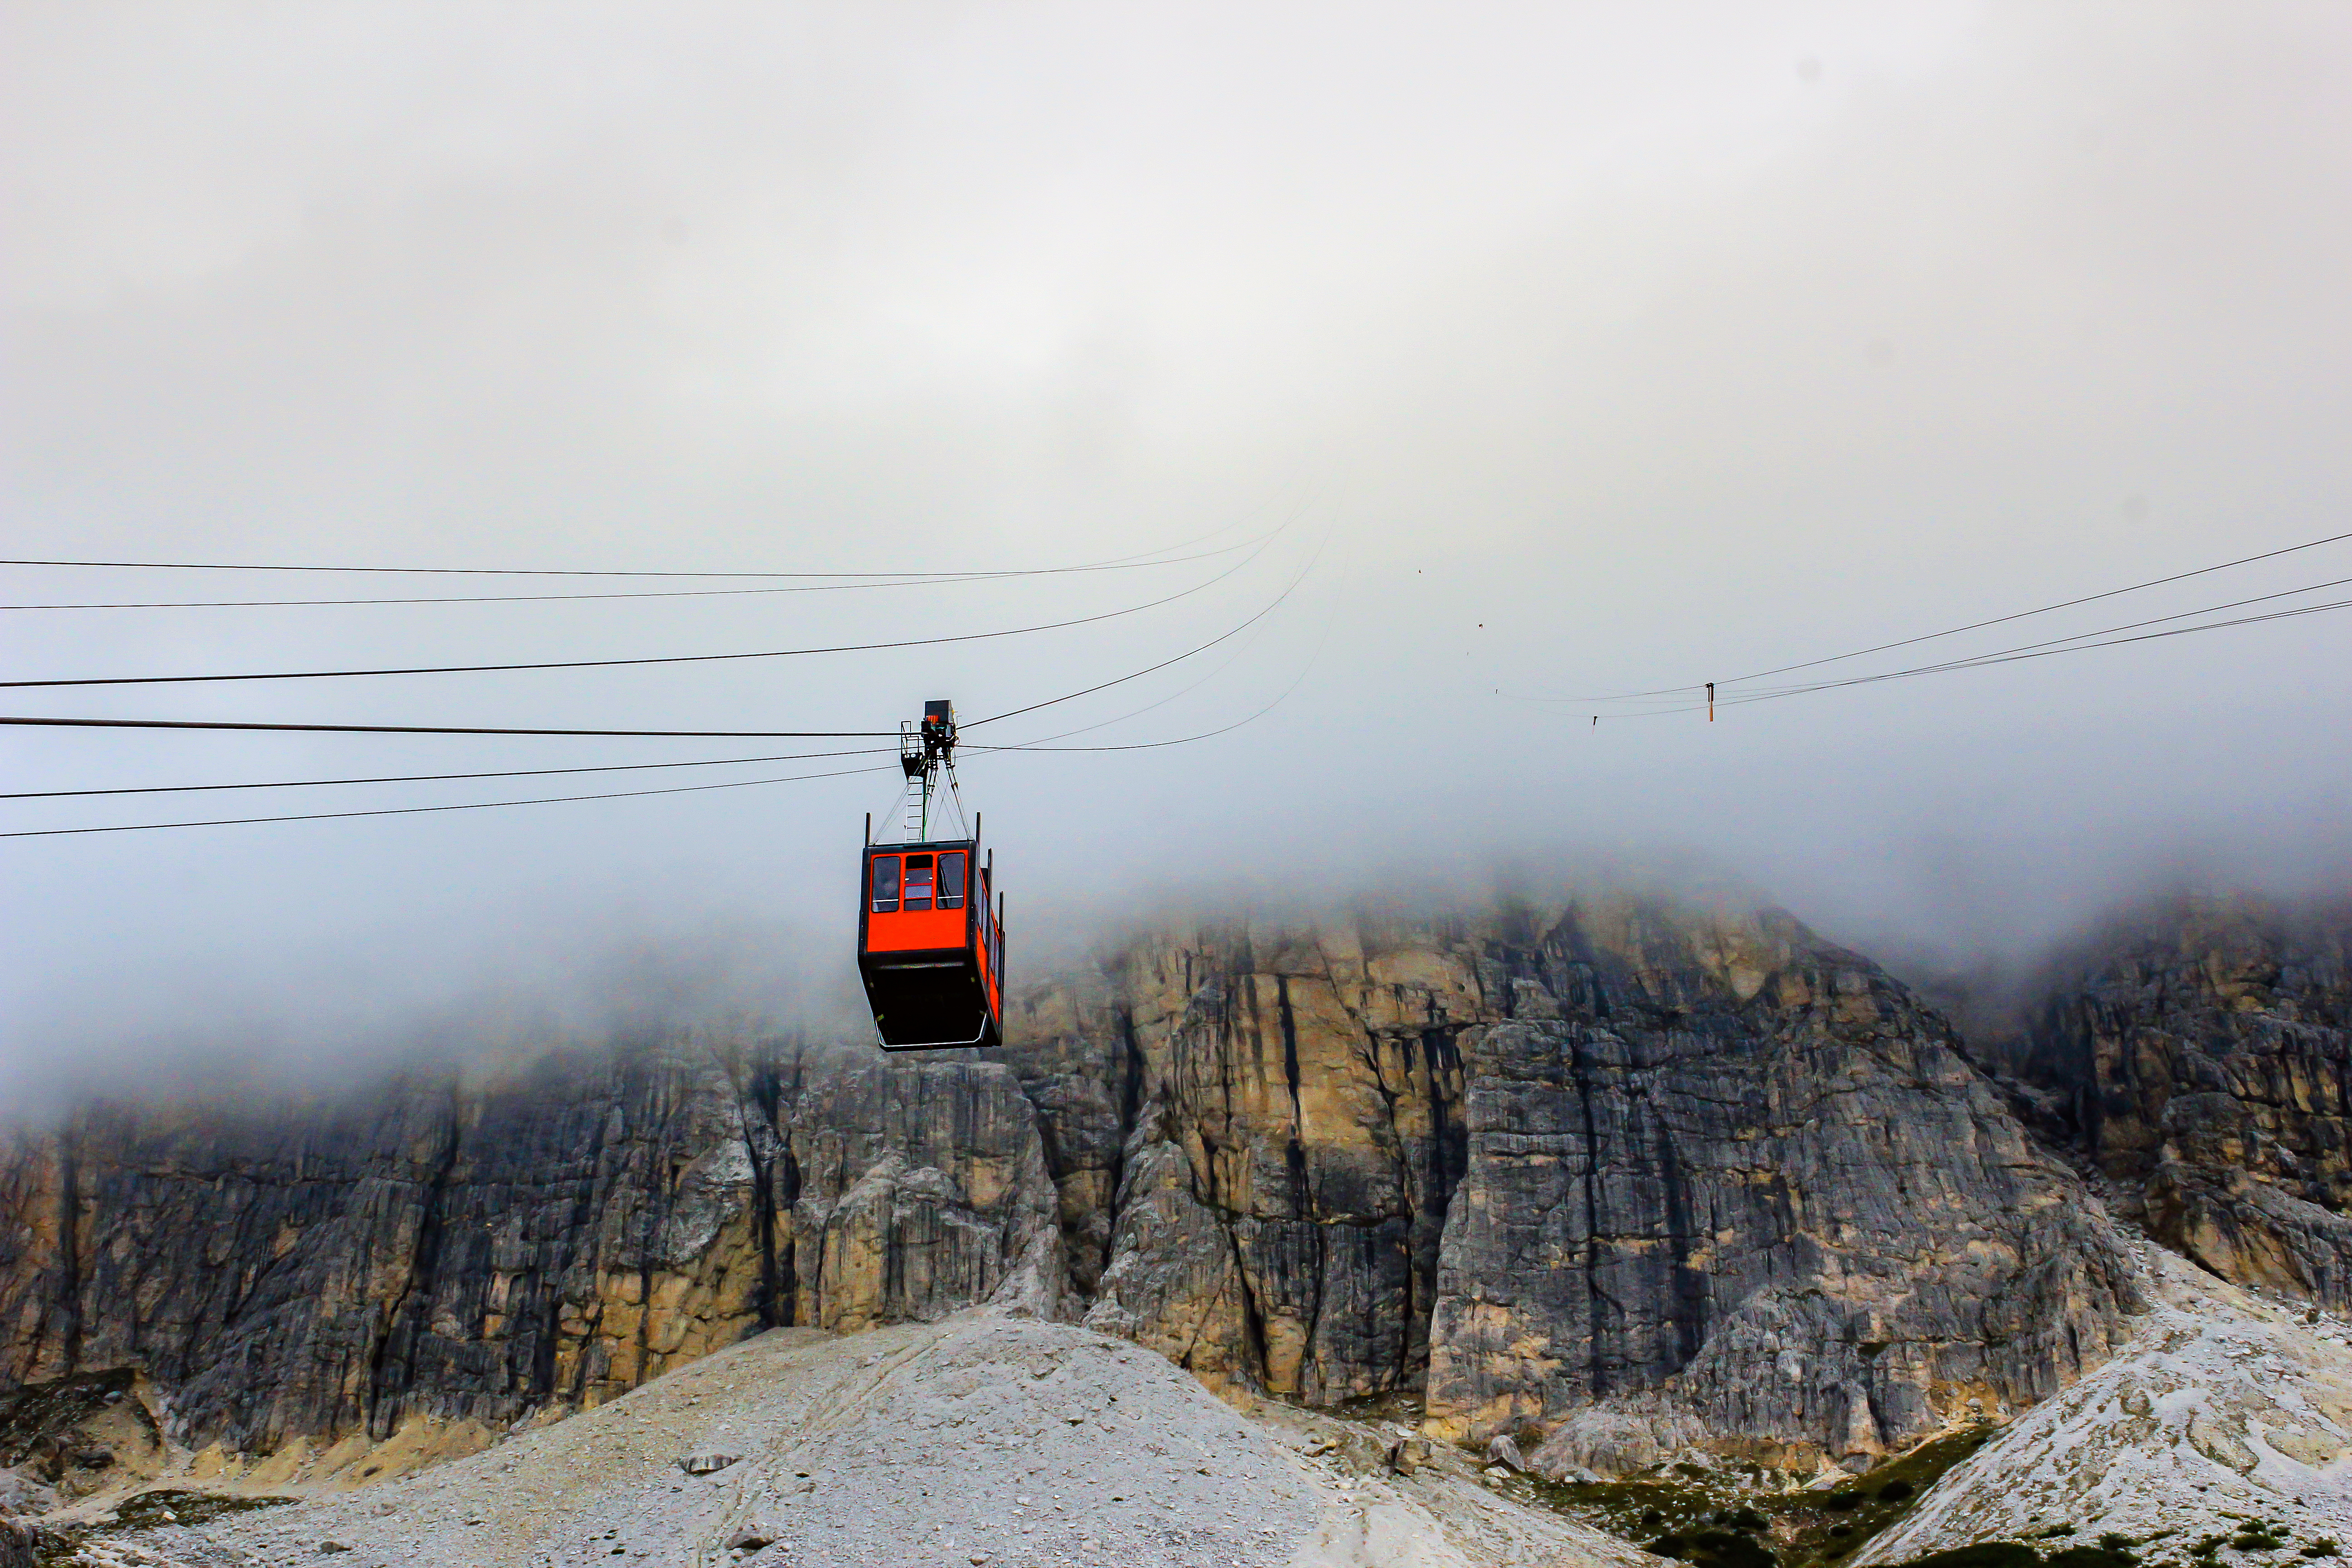 Cable car at Falzarego, Northern Italy.